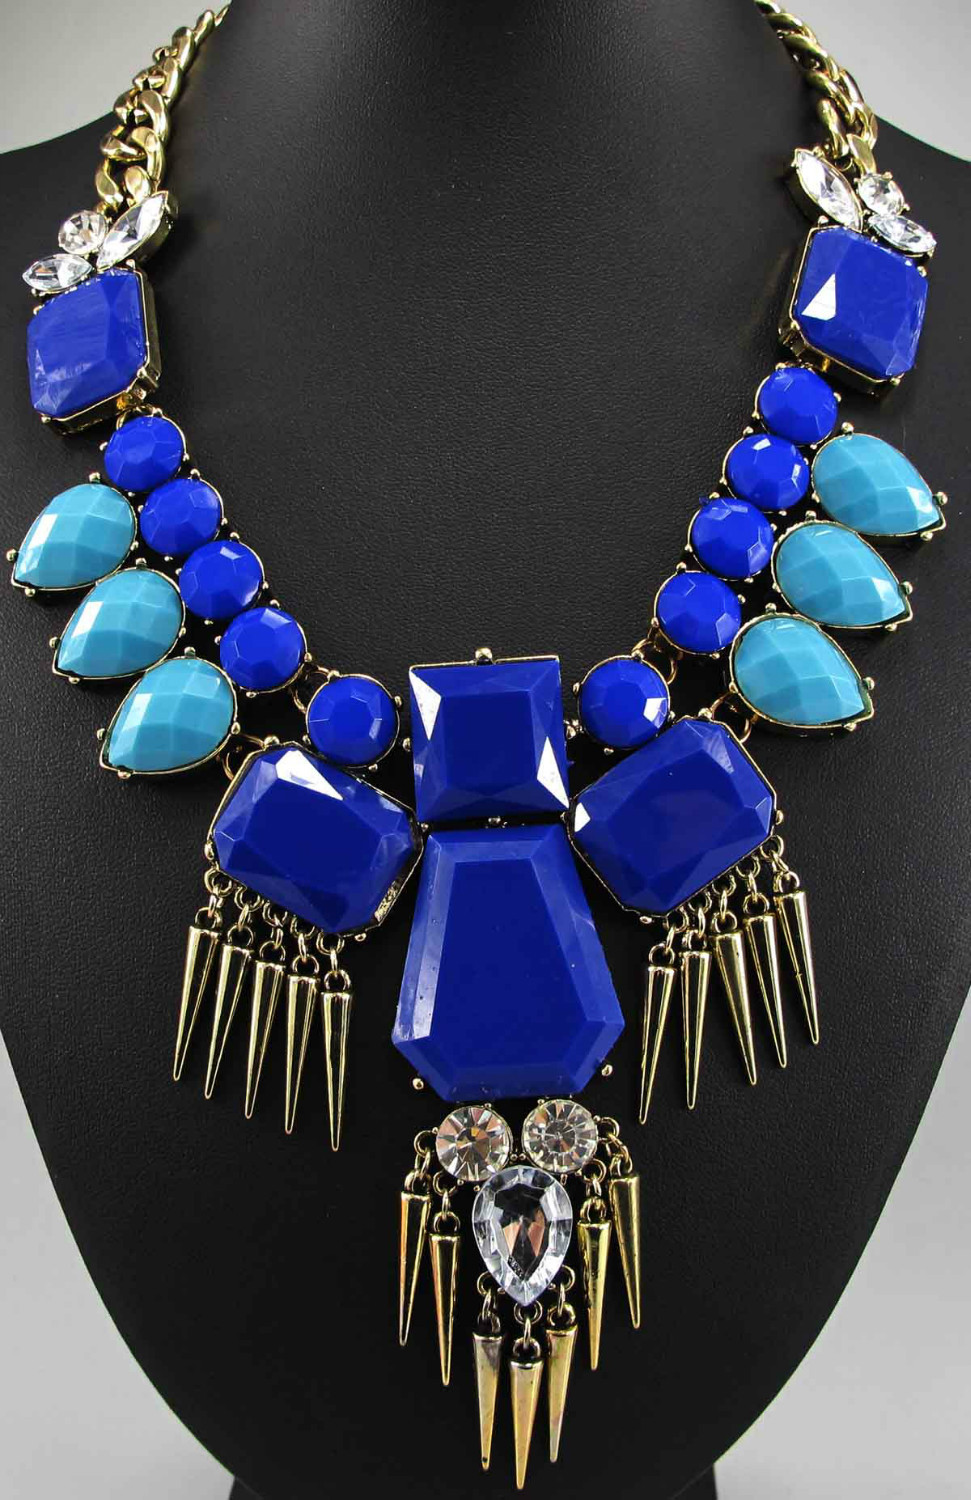 Newest Gorgeous Fashion Necklace Jewelry crystal ra Department Statement Necklace Women Choker Necklaces Pendants q490(China (Mainland))